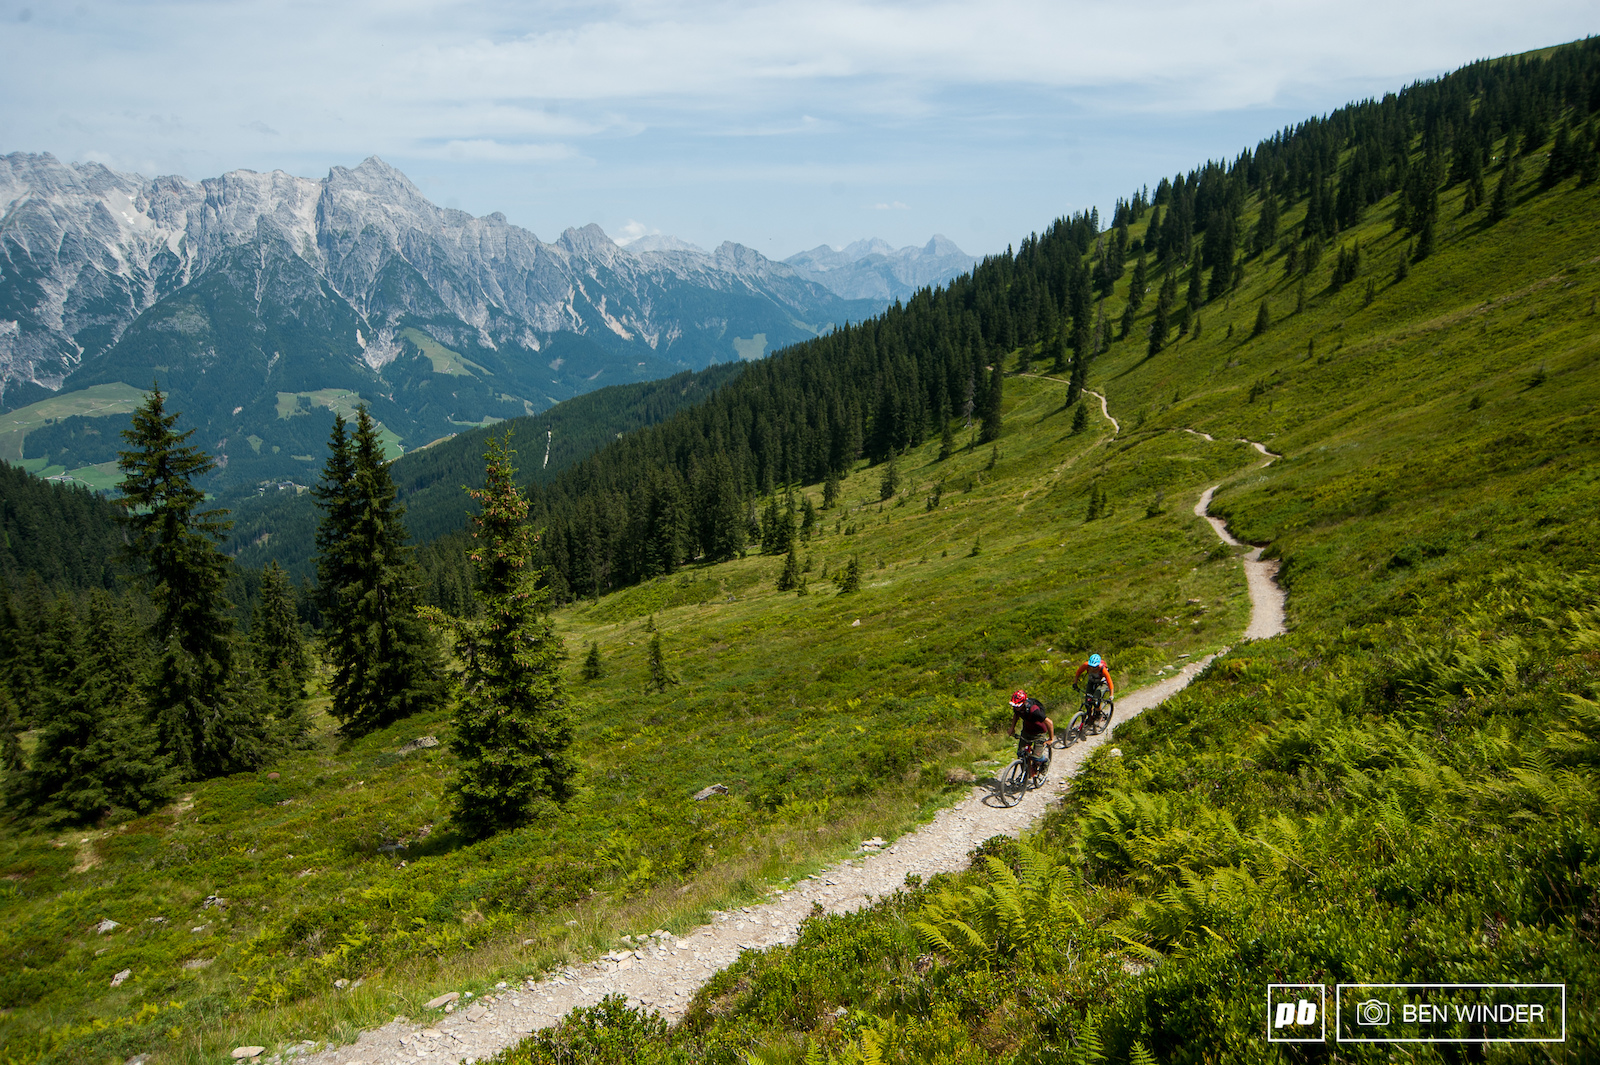 After one run we headed back over towards Saalbach along a fun section of trail.